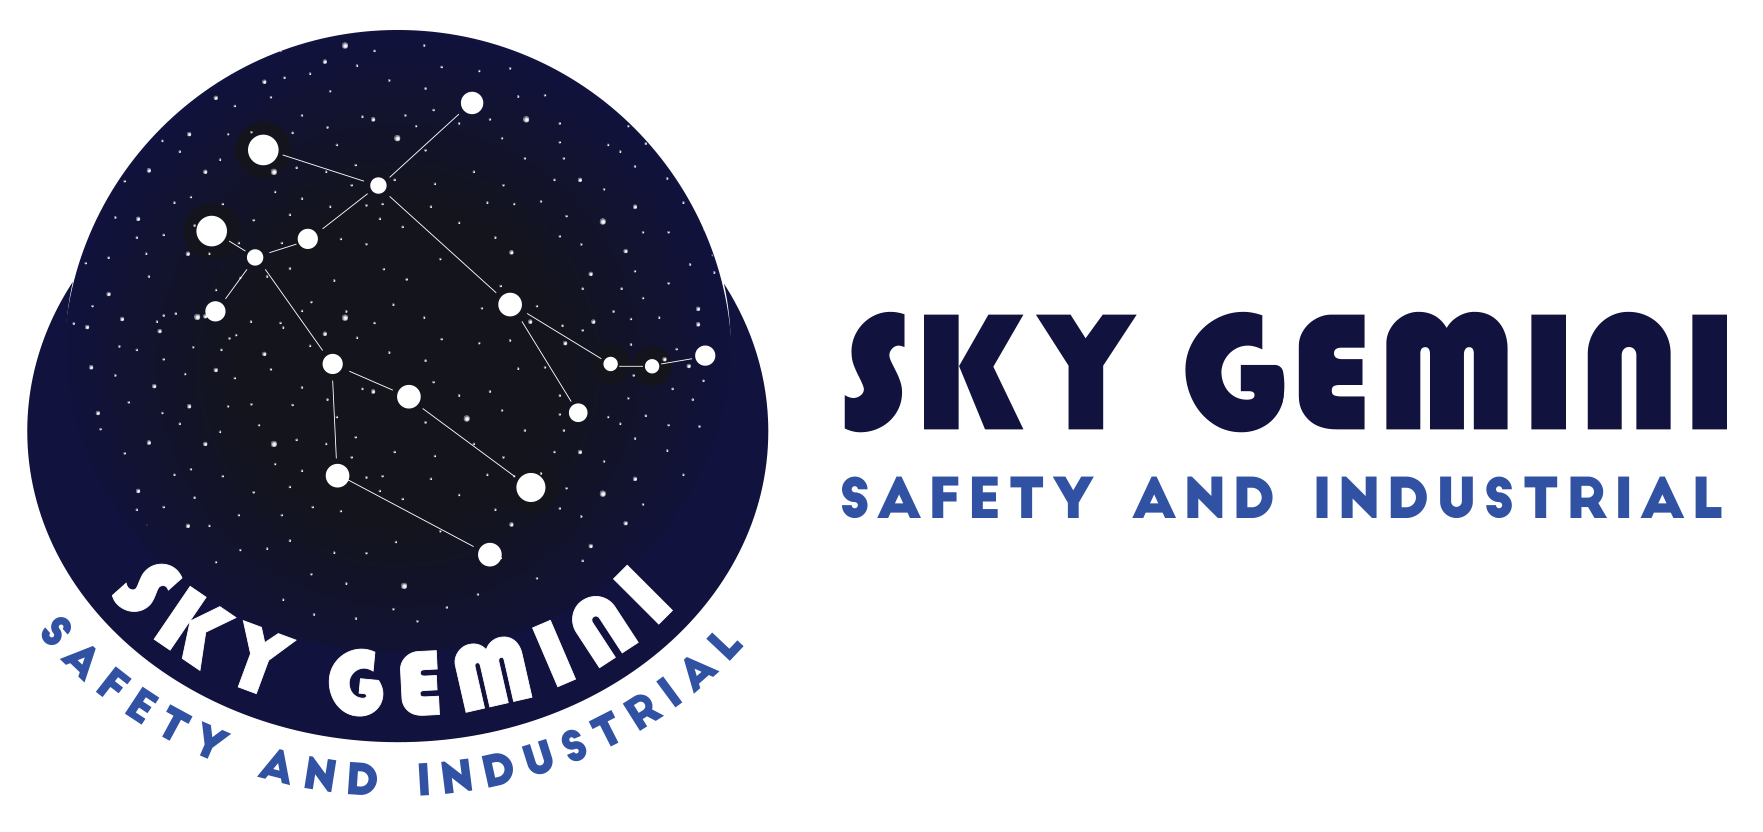 SKY GEMINI SAFETY & INDUSTRIAL